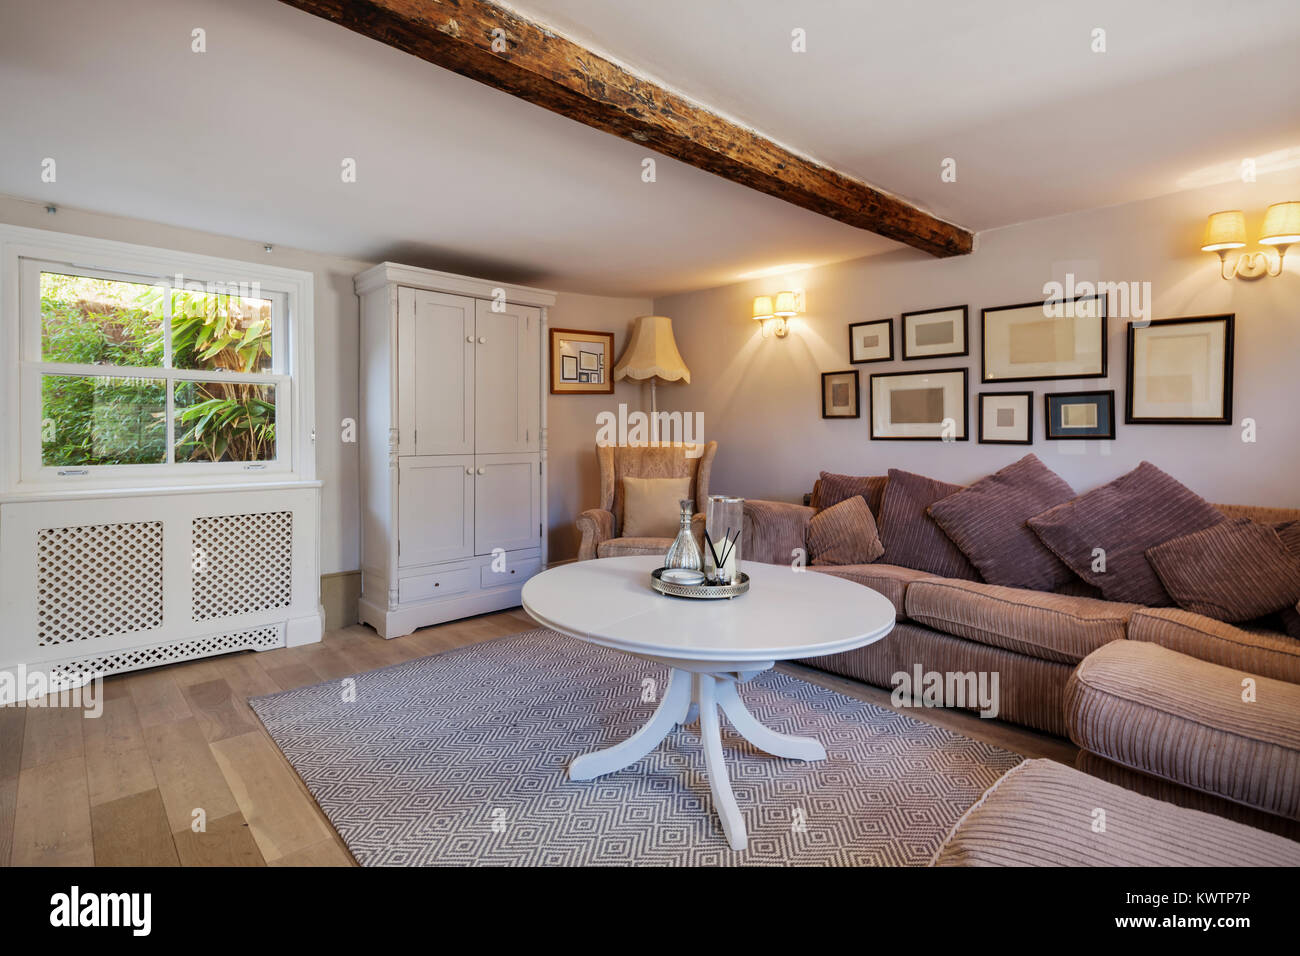 Stylish Cottage Living Room Containing Sofa With Large Cushions, Chic Simple  Decor, Numerous Picture Frames, Coffee Table, Cupboard Window And Exposed